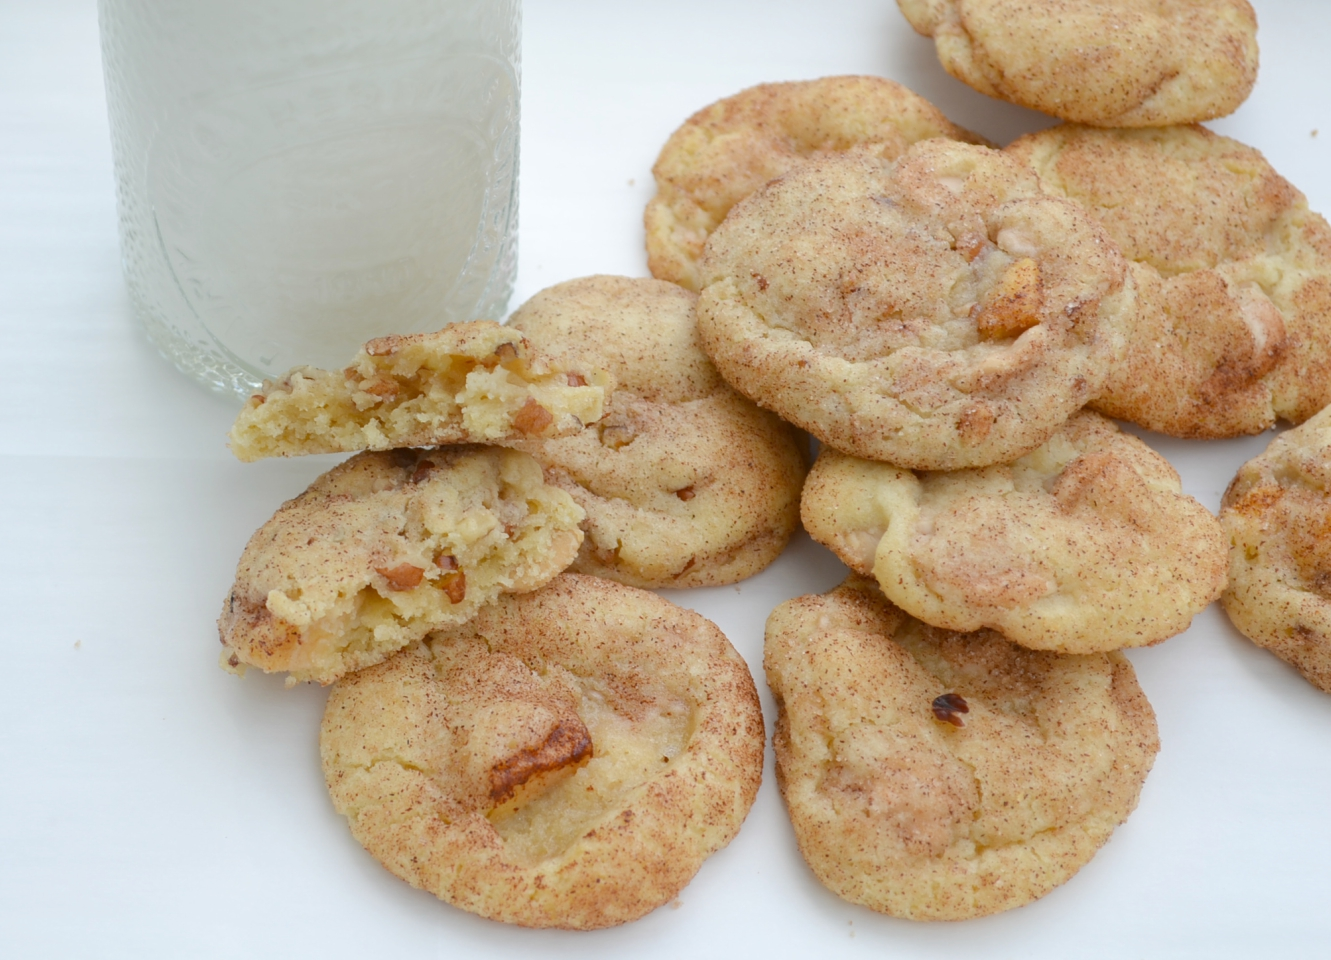 A basic snickerdoodle recipe with caramel baking chips, diced apples, and pecan chips makes an over the top treat.